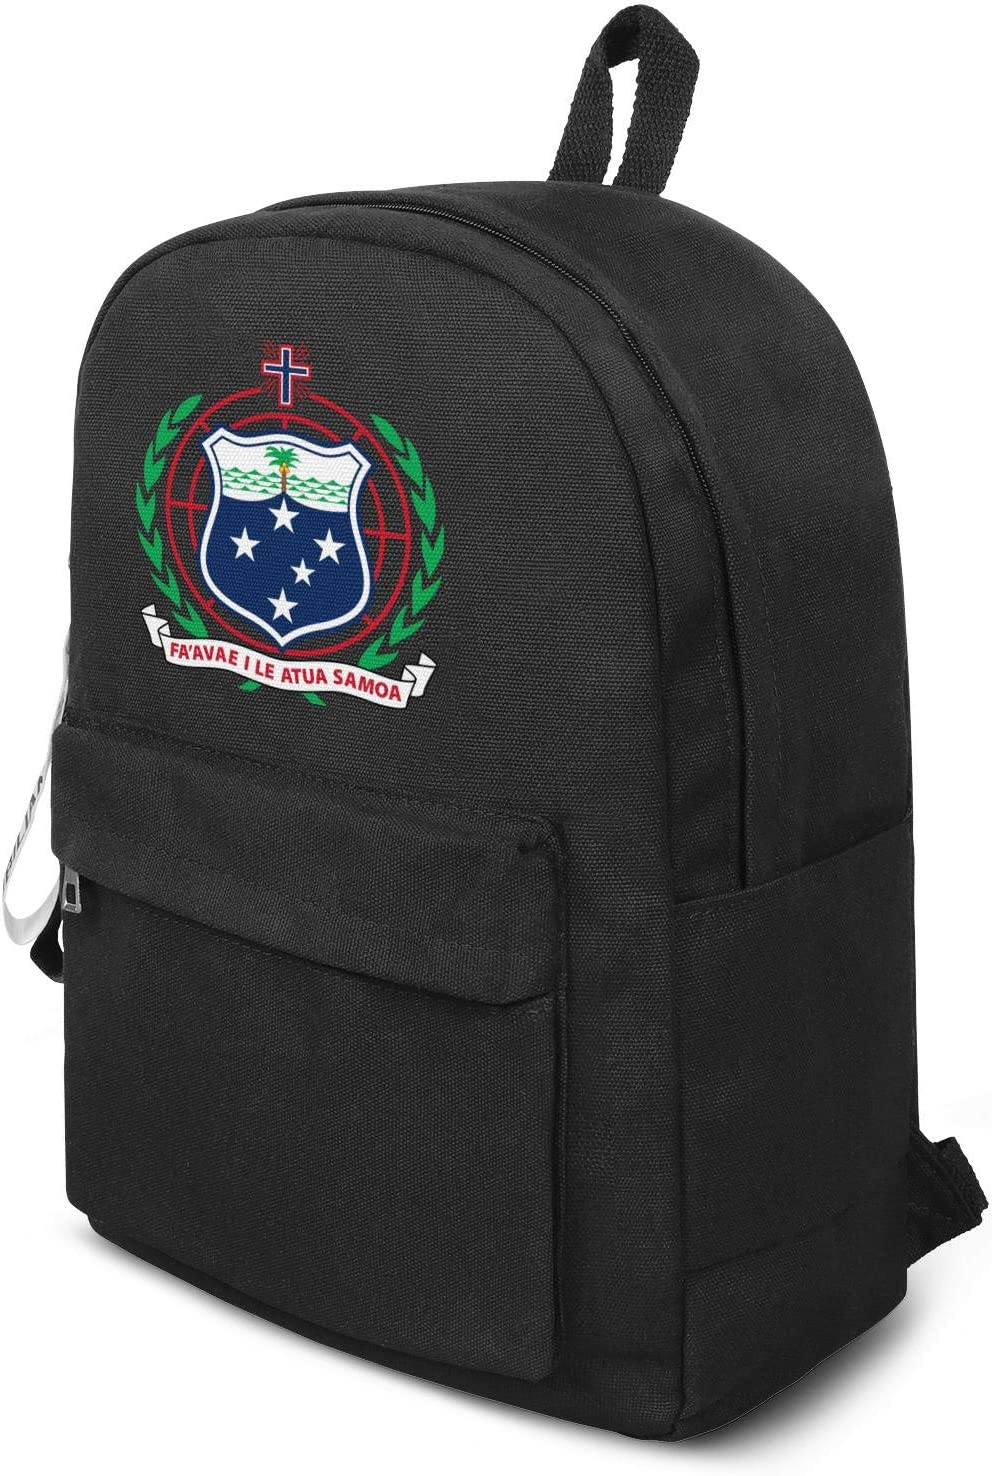 Travel Laptop Backpack American Samoa Coat Of Arms Student Rucksack for Travel Outdoor Camping Computer Bag